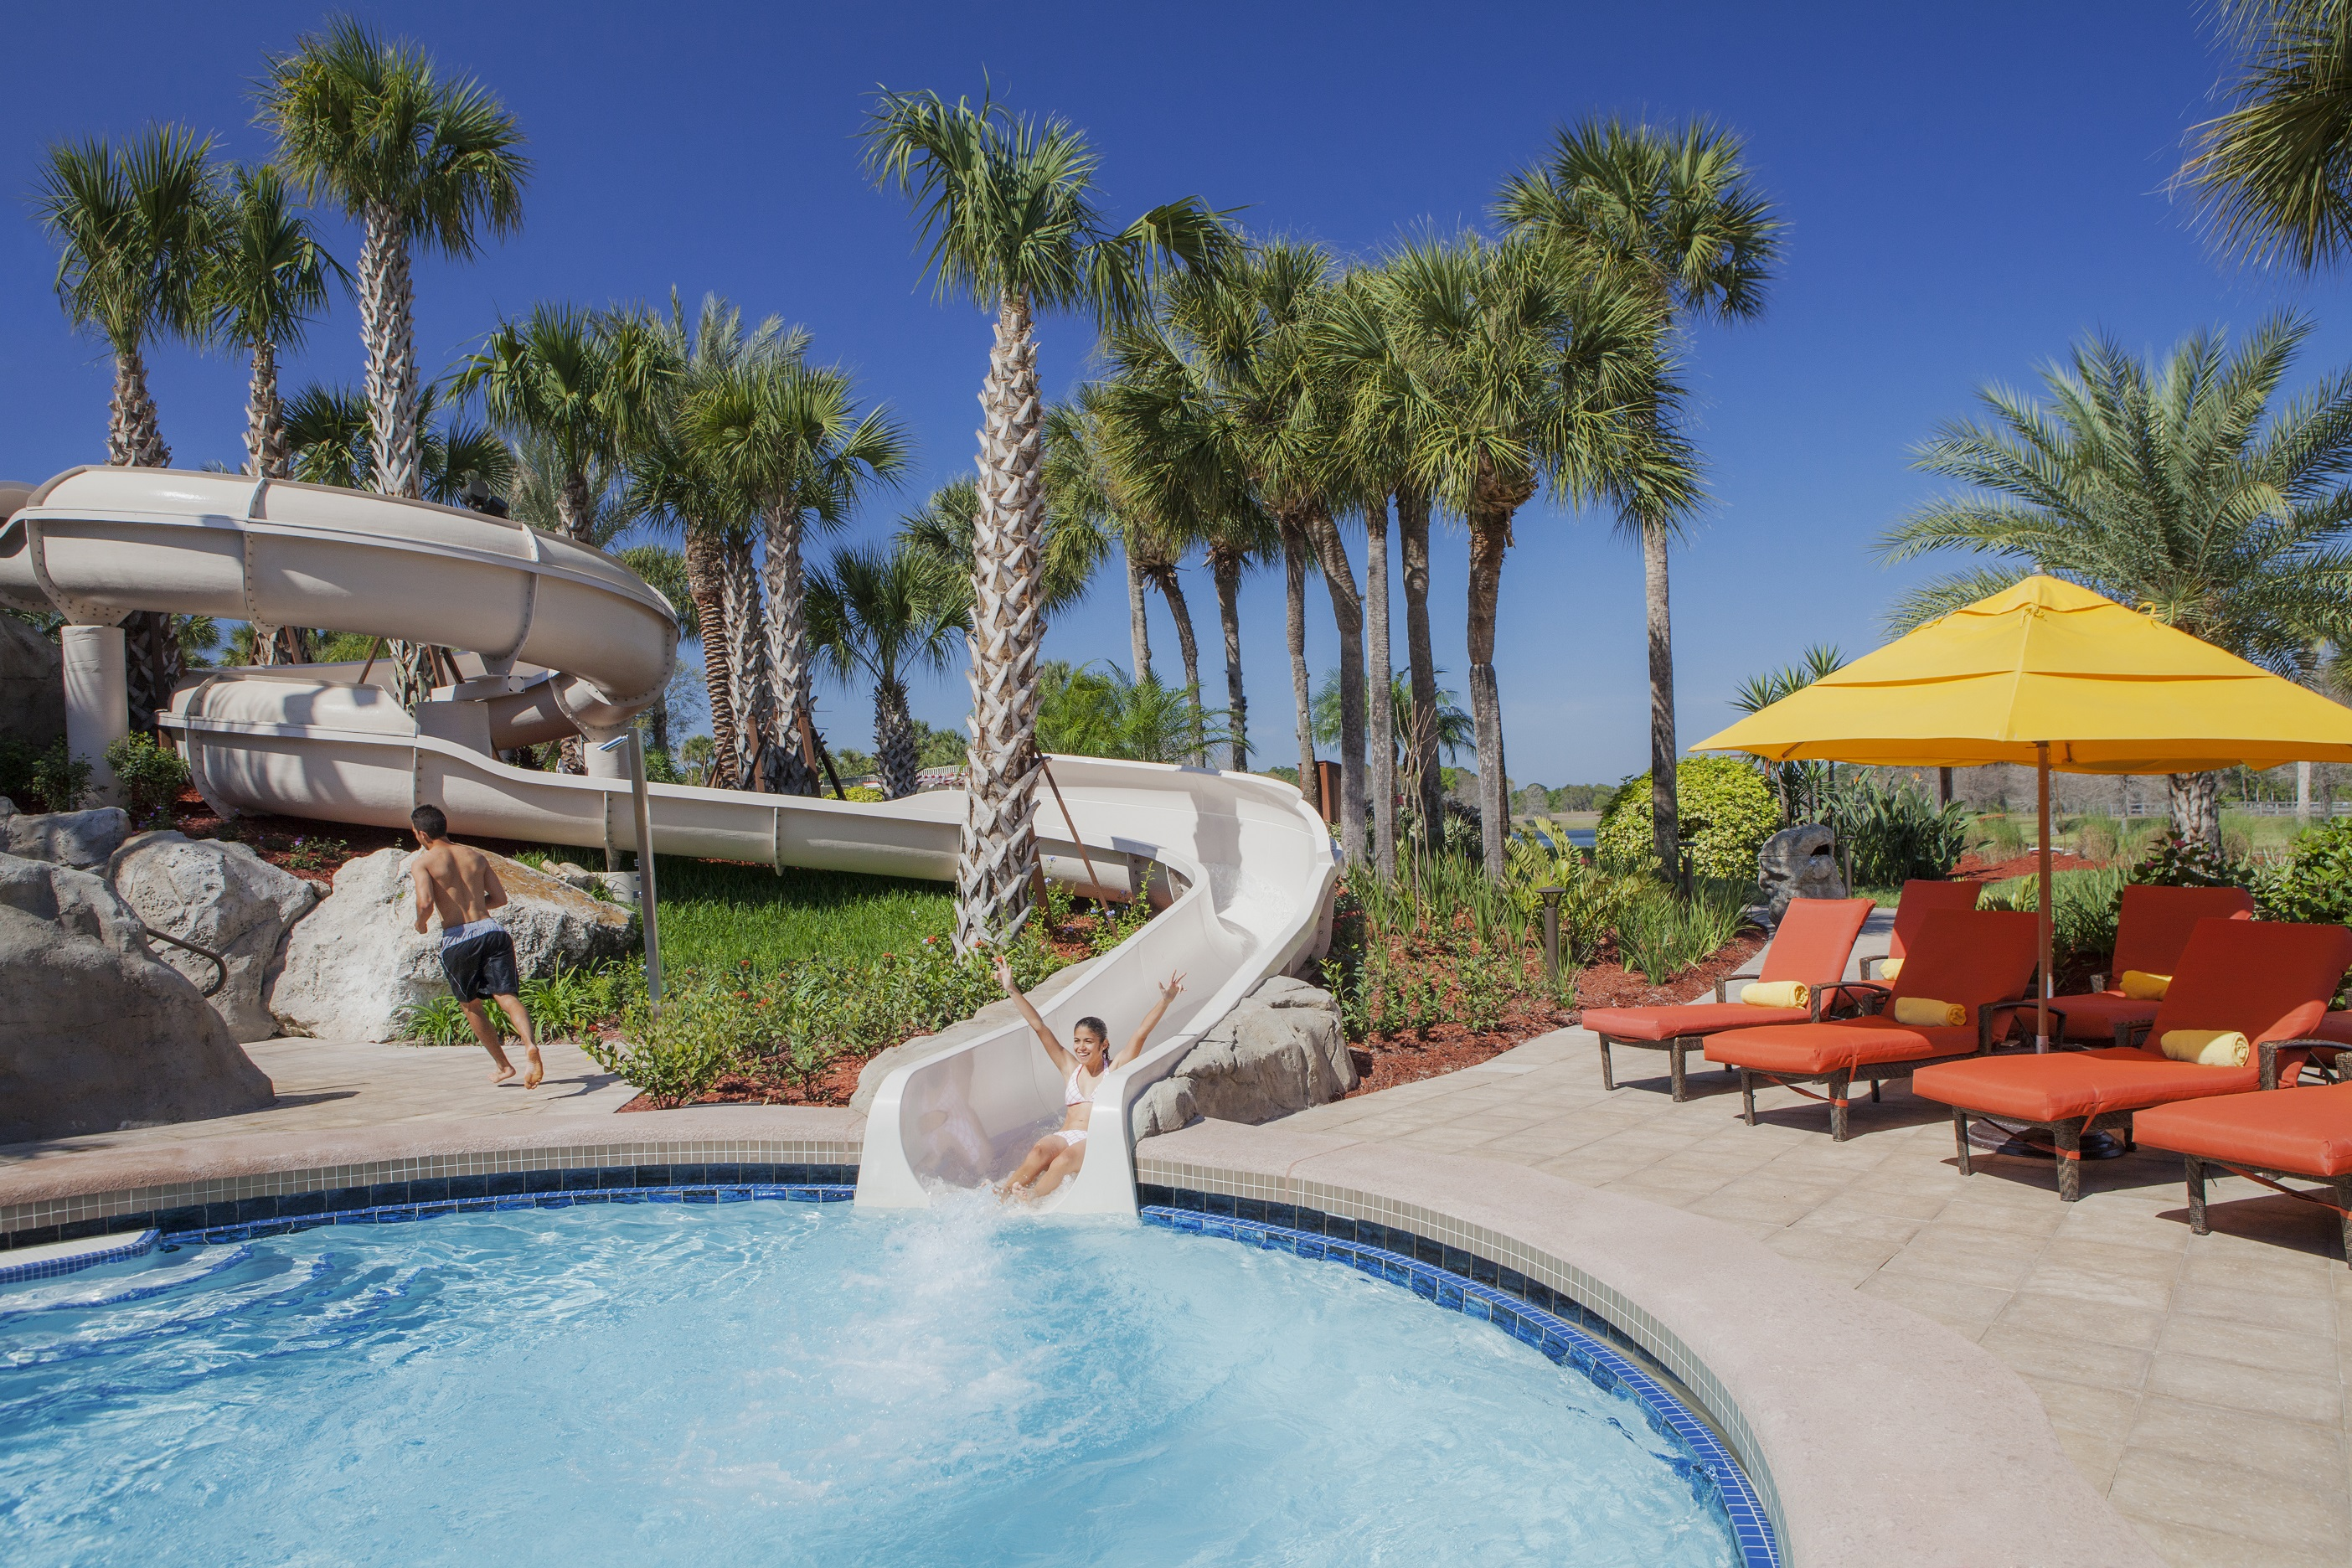 Renew Refresh Relax With A Spring Getaway At Hyatt